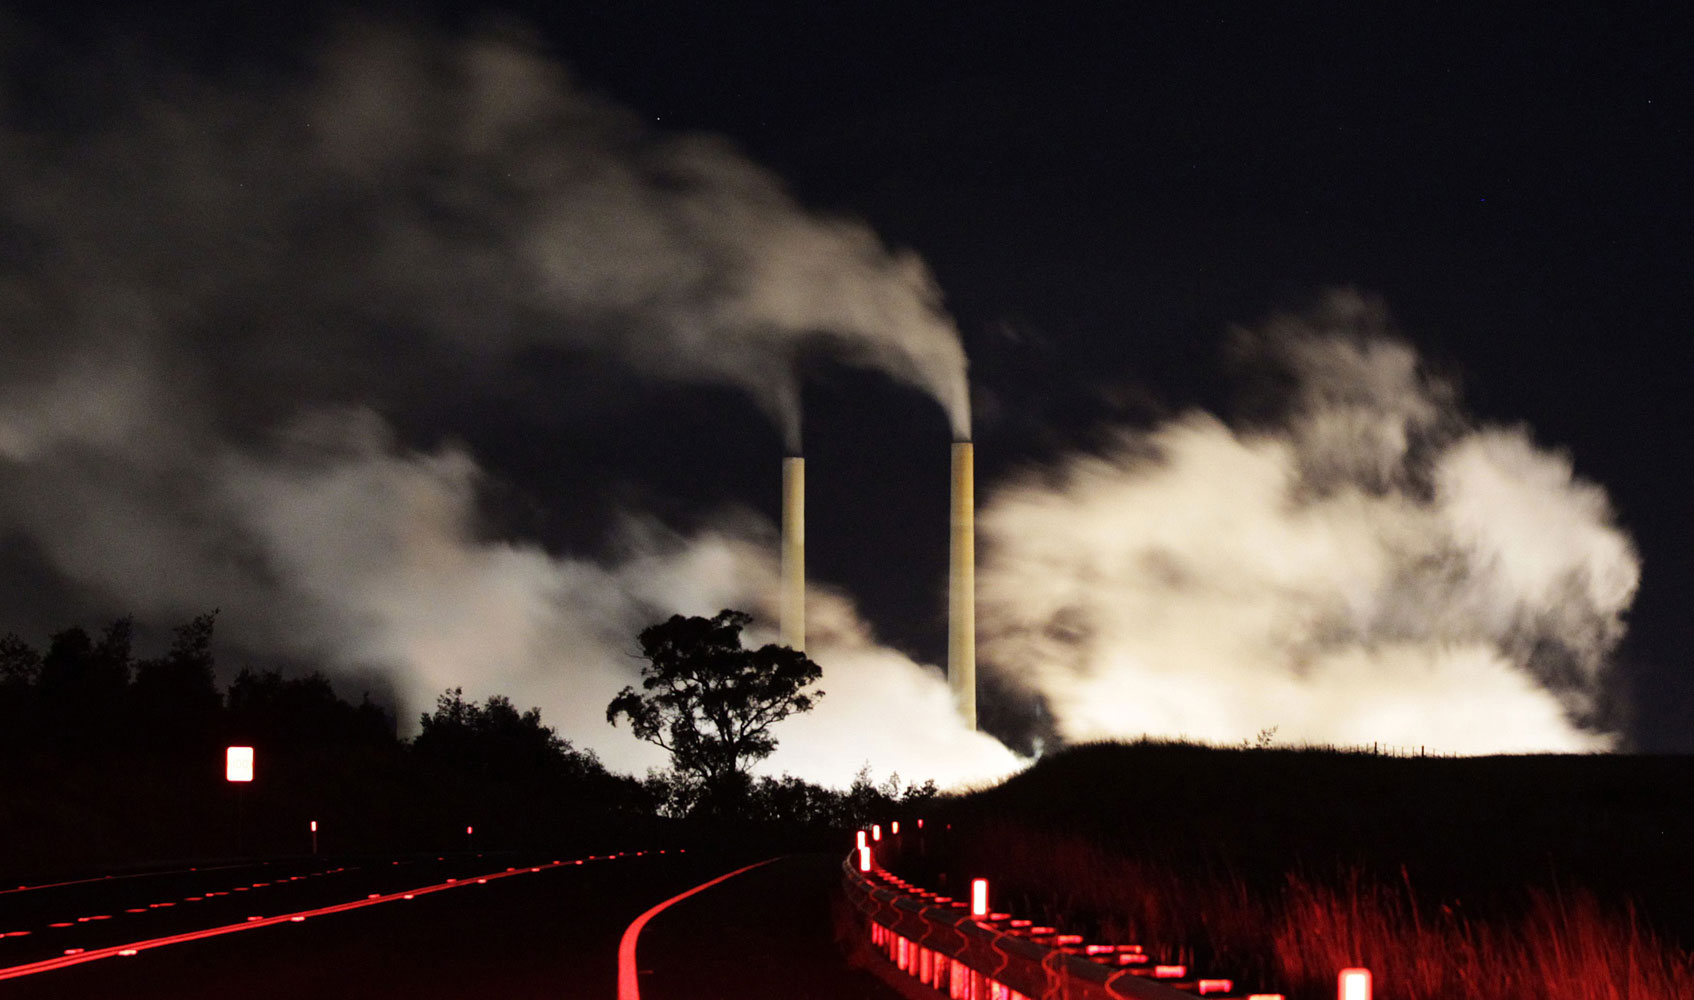 July 7, 2011. Steam and other emissions rise from a coal-fired power station near Lithgow, 120 km (75 miles) west of Sydney. Australia is set to slap a carbon tax of A$23 a metric ton ($24.60) on its major emitters, newspapers said on Thursday, but it has halved the number of companies liable for the tax in a bid to overcome hostility to the policy.